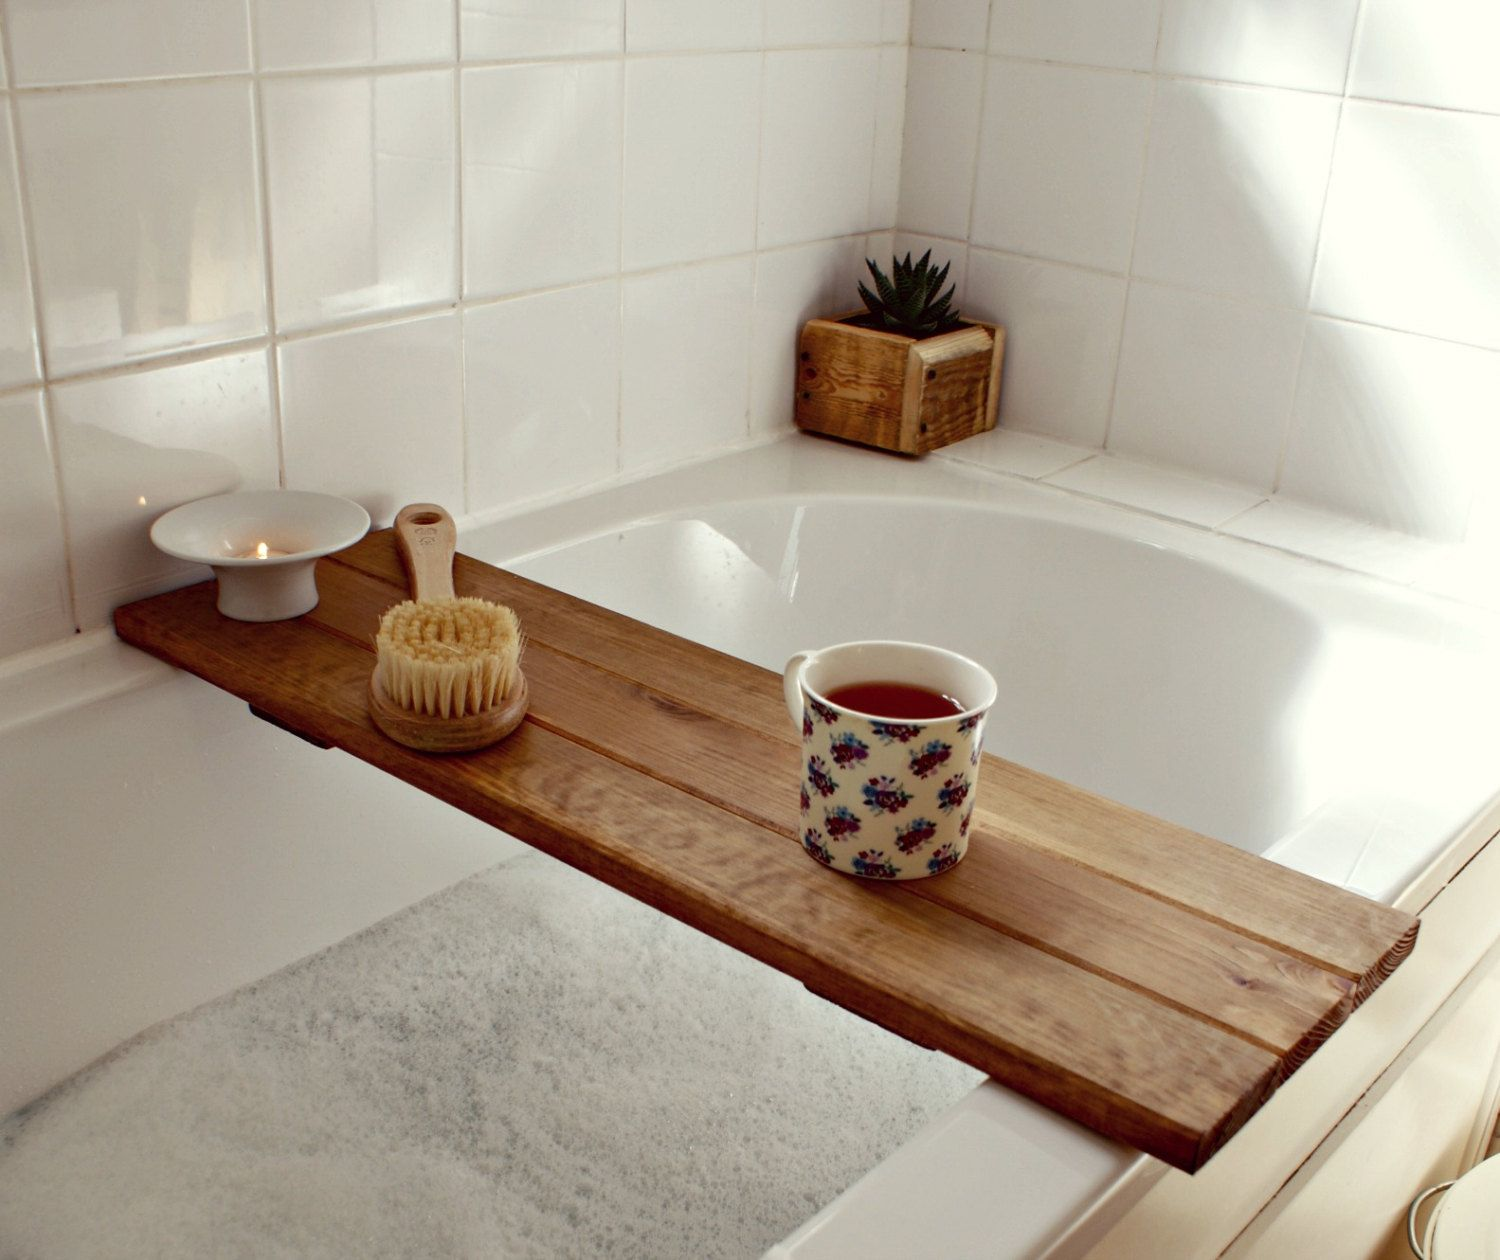 bath tray reclaimed wood tray. bathroom decor. bath caddy. wooden